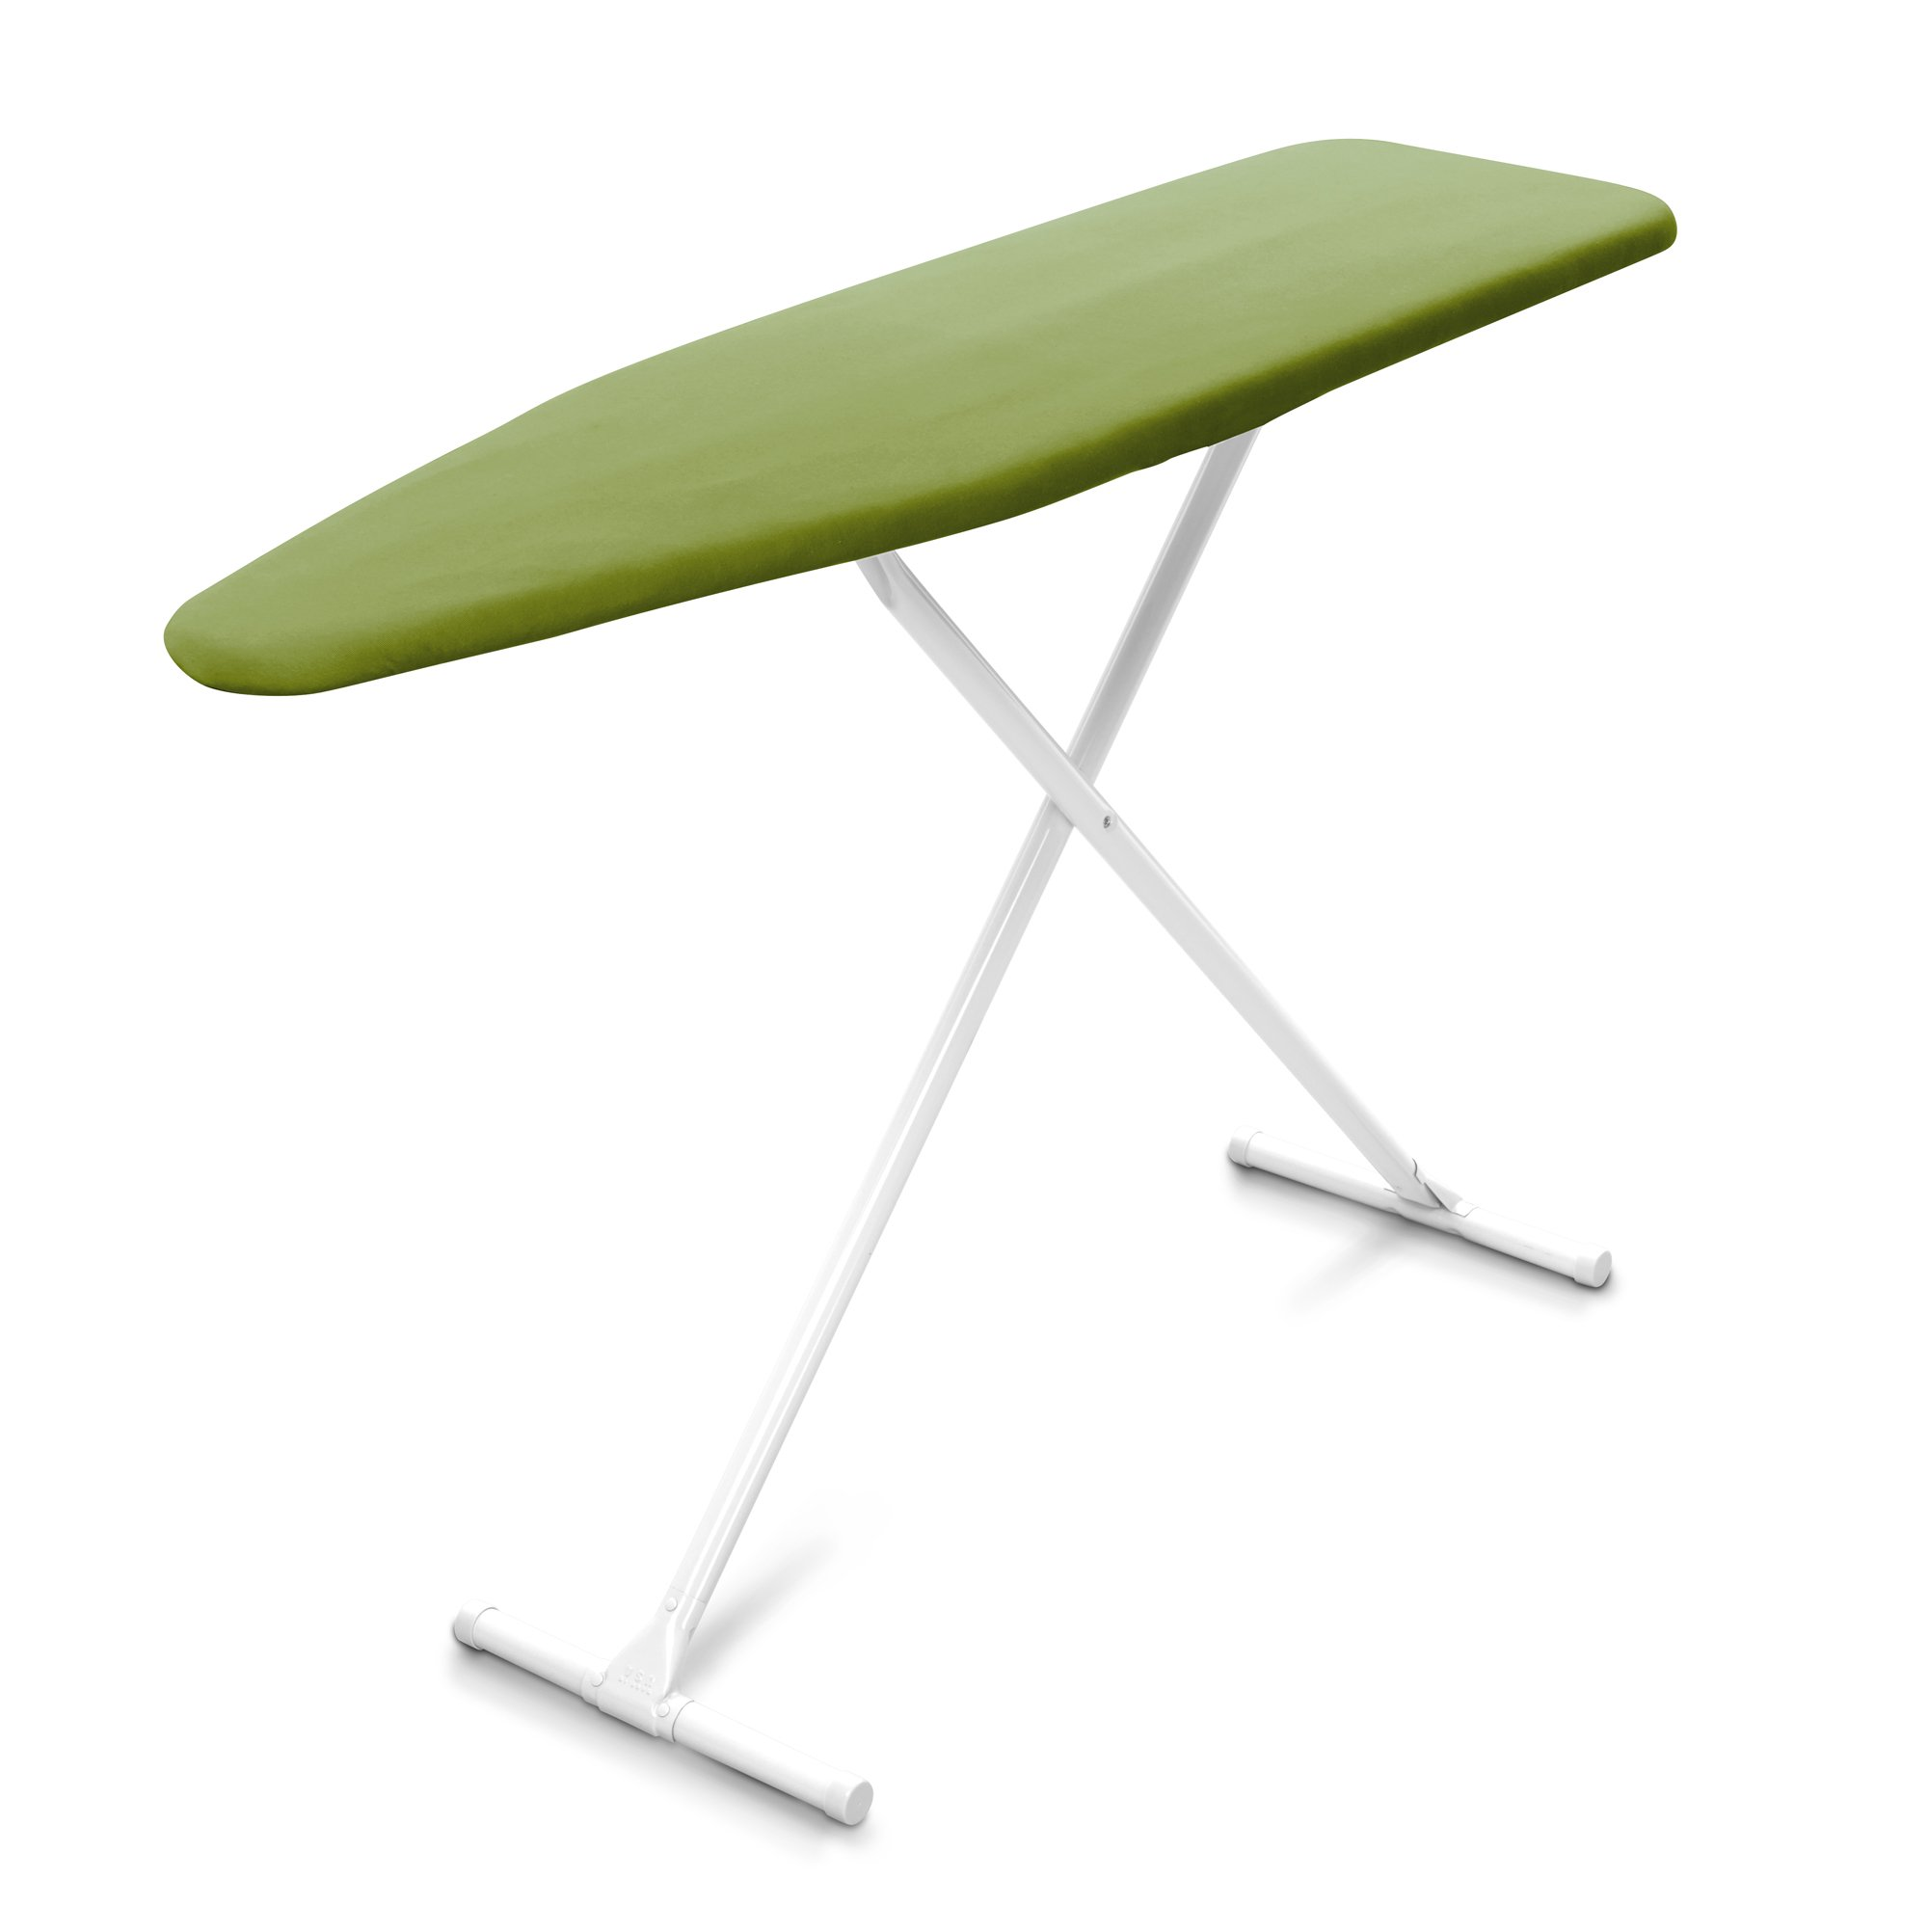 Homz T-Leg Steel Top Ironing Board with Foam Pad, Fresh Green Cover by HOMZ